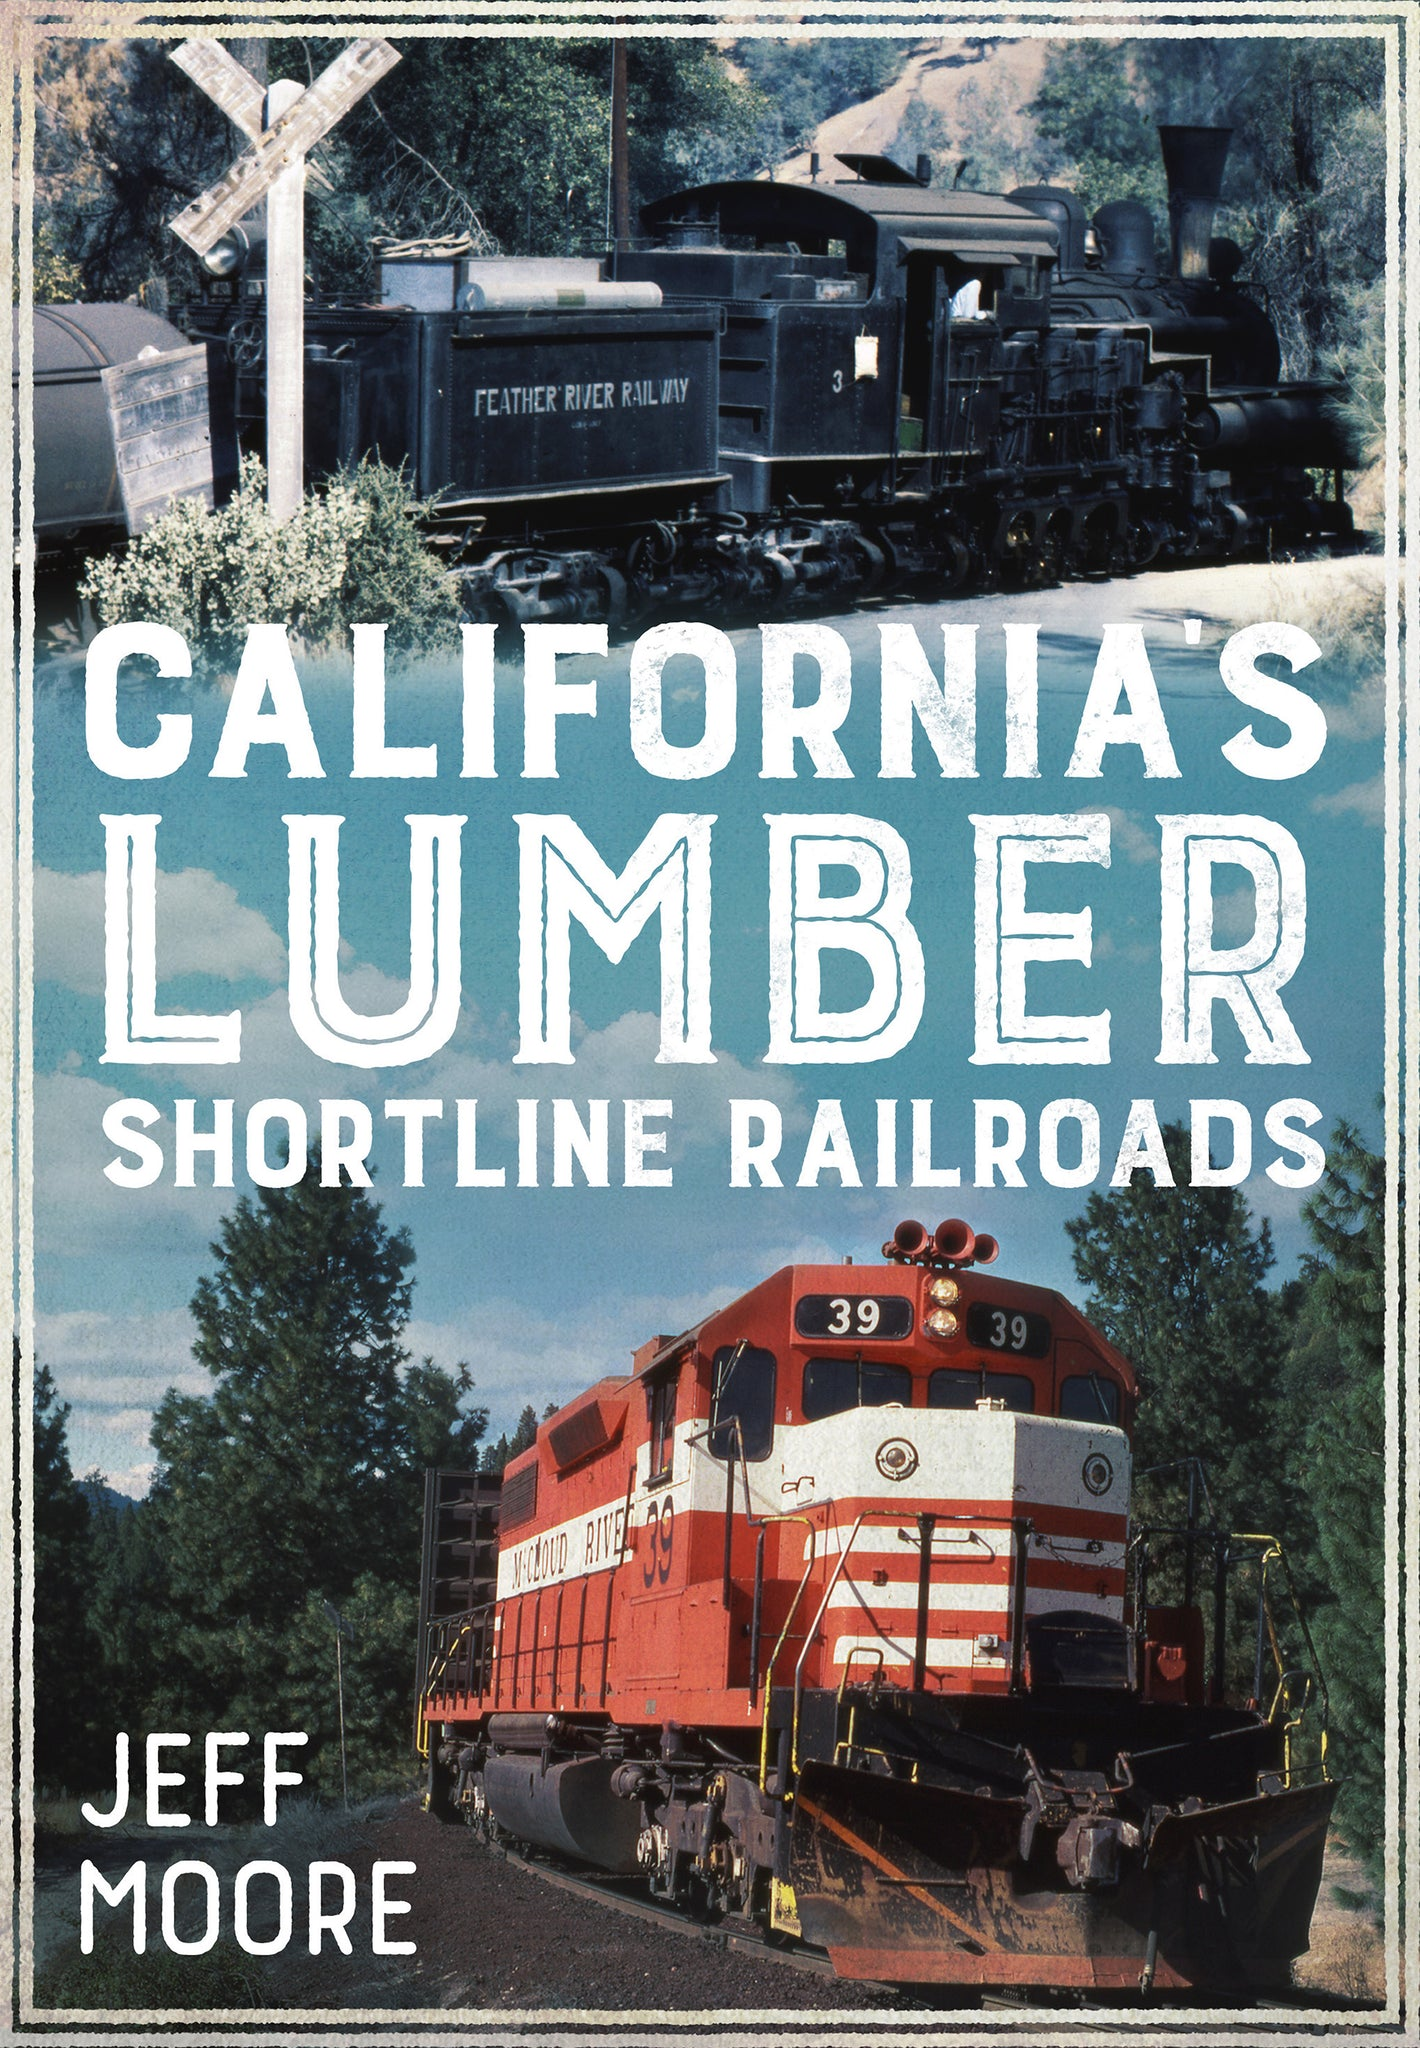 California's Lumber Shortline Railroads - published by America Through Time